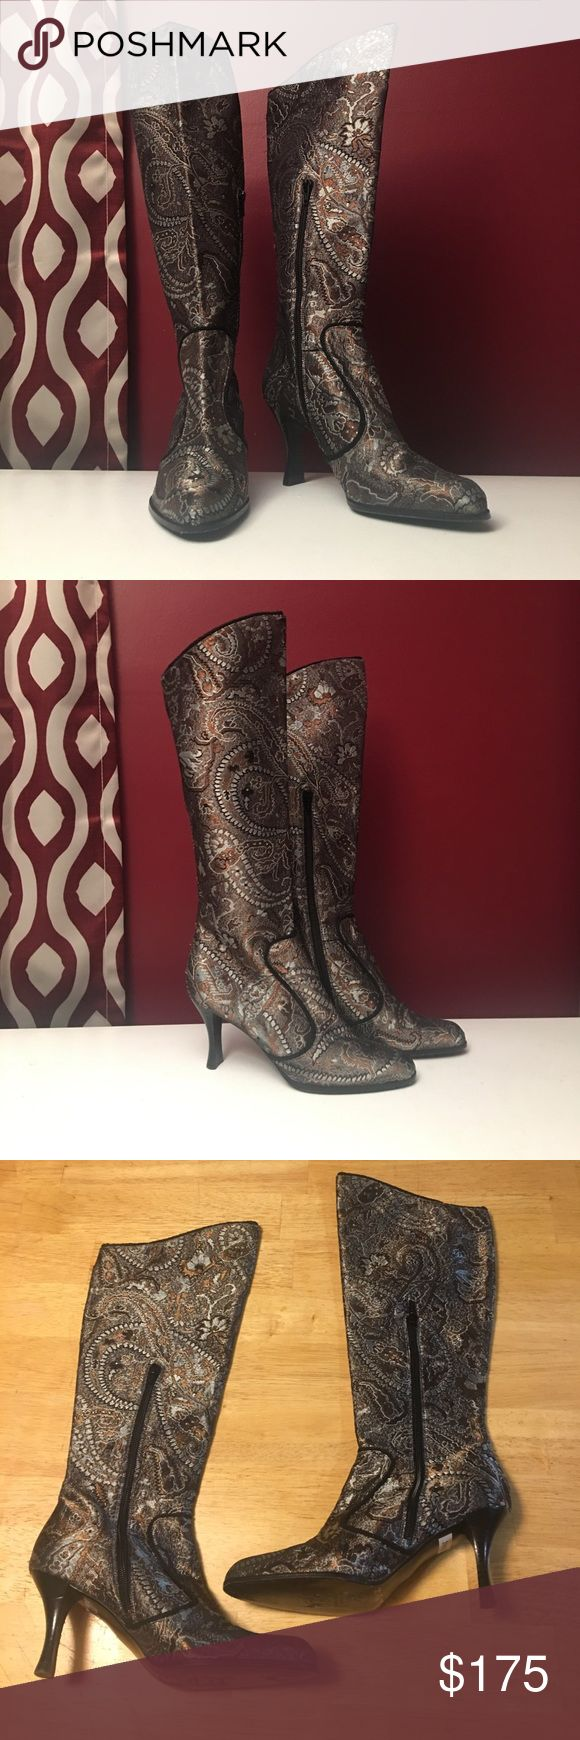 Stuart Weitzman Boots These Stuart Weitzman boots deserve a really good home where they will be worn and loved with appreciation! The pattern is an unusual paisley pattern, the soles are leather. On each boot's upper part of the instep is a zipper that starts from the bottom and goes a little more than half way up. Worn only three times. The marks on the bottom of the soles were from the markings of the stickers and the number written by the retailer where they were bought. Smoke free home…